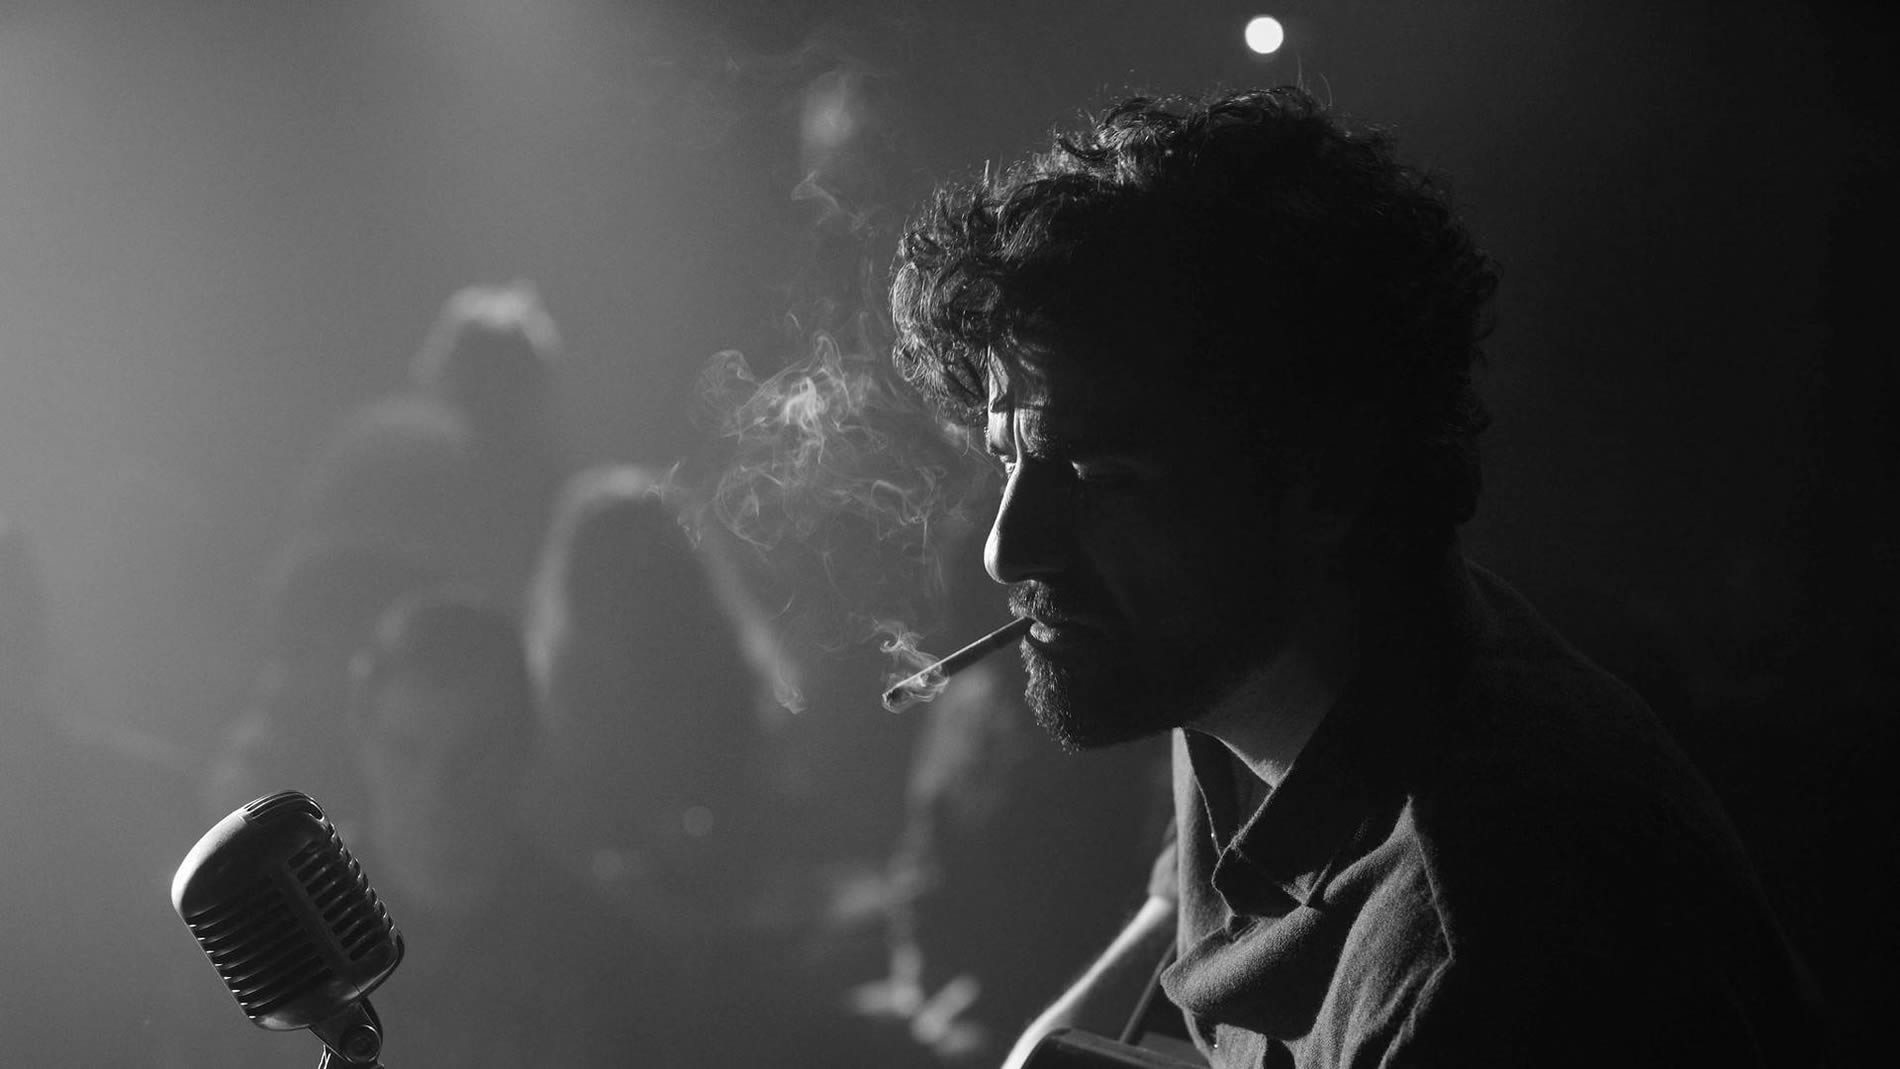 oscar smoking and playing guitar, Inside Llewyn Davis